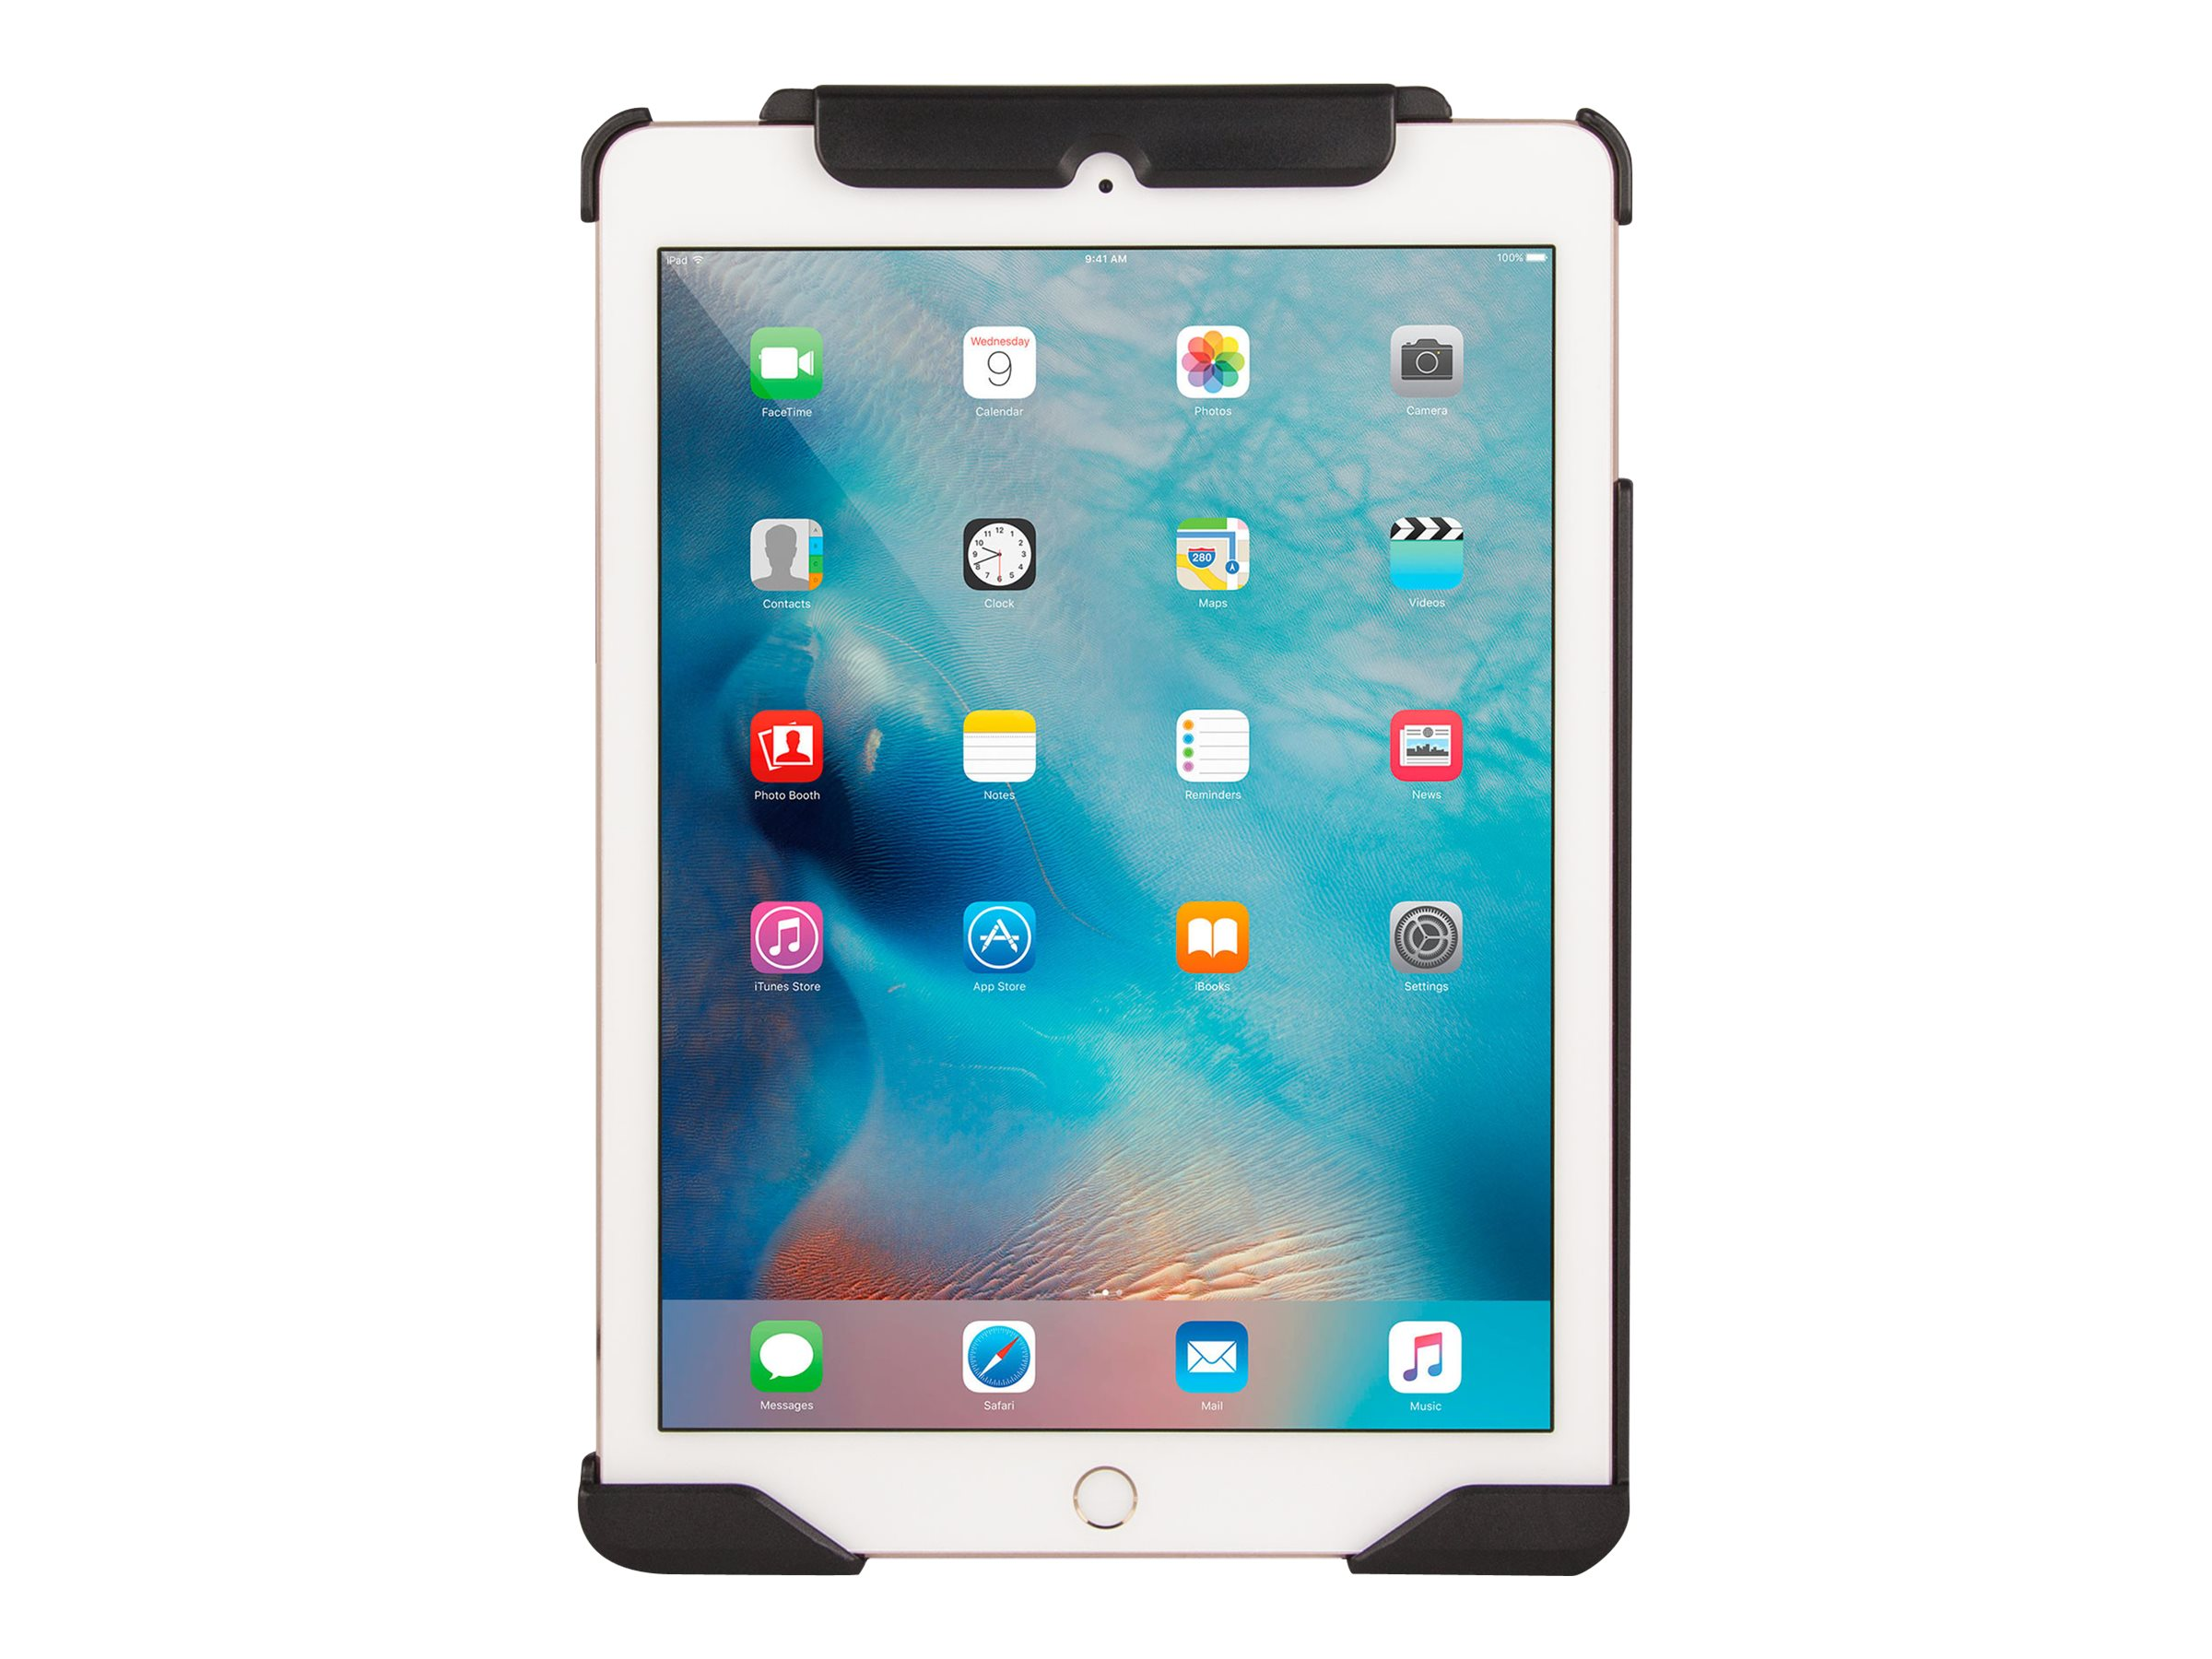 Joy Factory MagConnect LockDown Secure Holder for iPad Pro 9.7, Air 2 (Cable Lock Included)